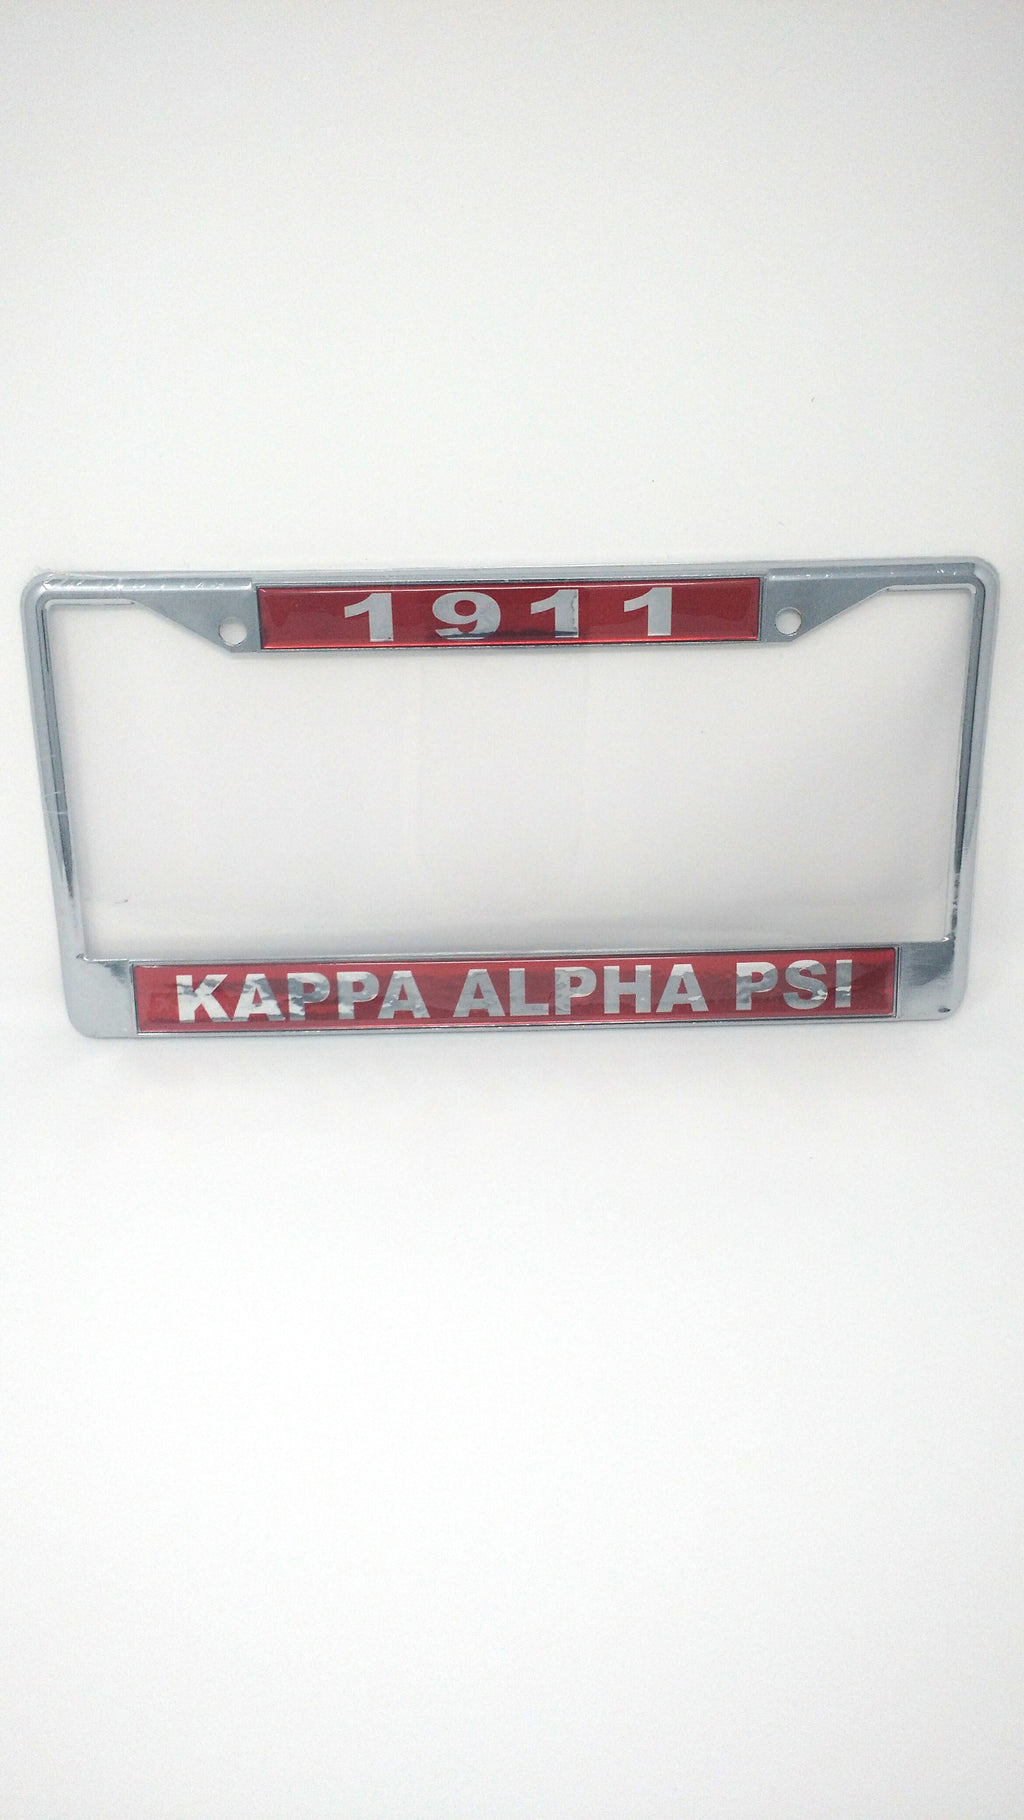 Kappa Alpha Psi 1911 License Plate Frame